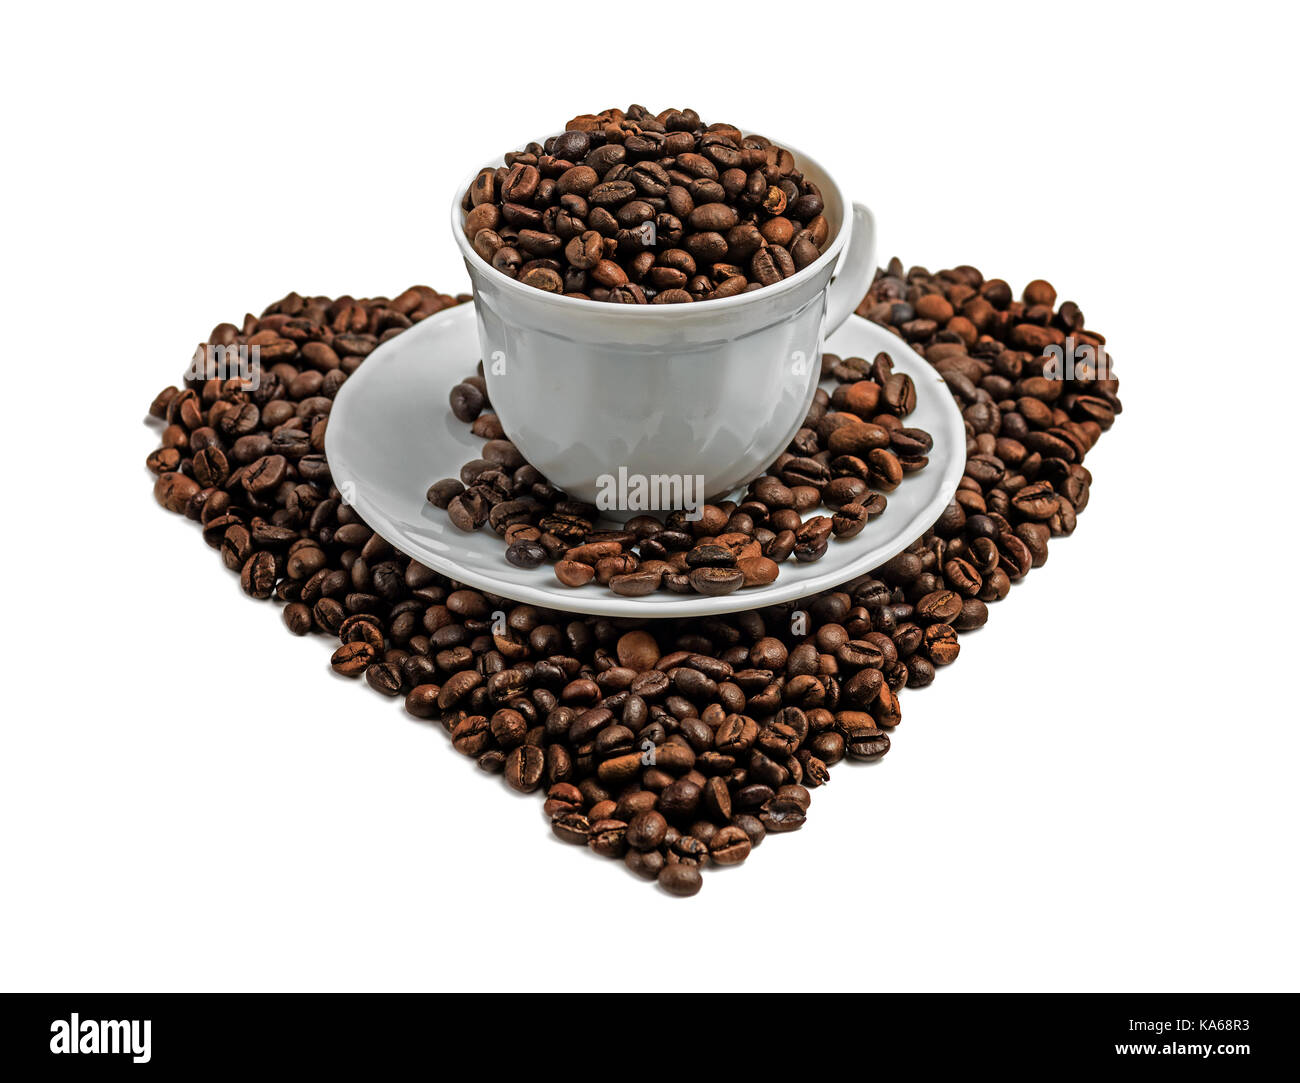 Coffee beans heart shape and  cup isolated on white background - Stock Image